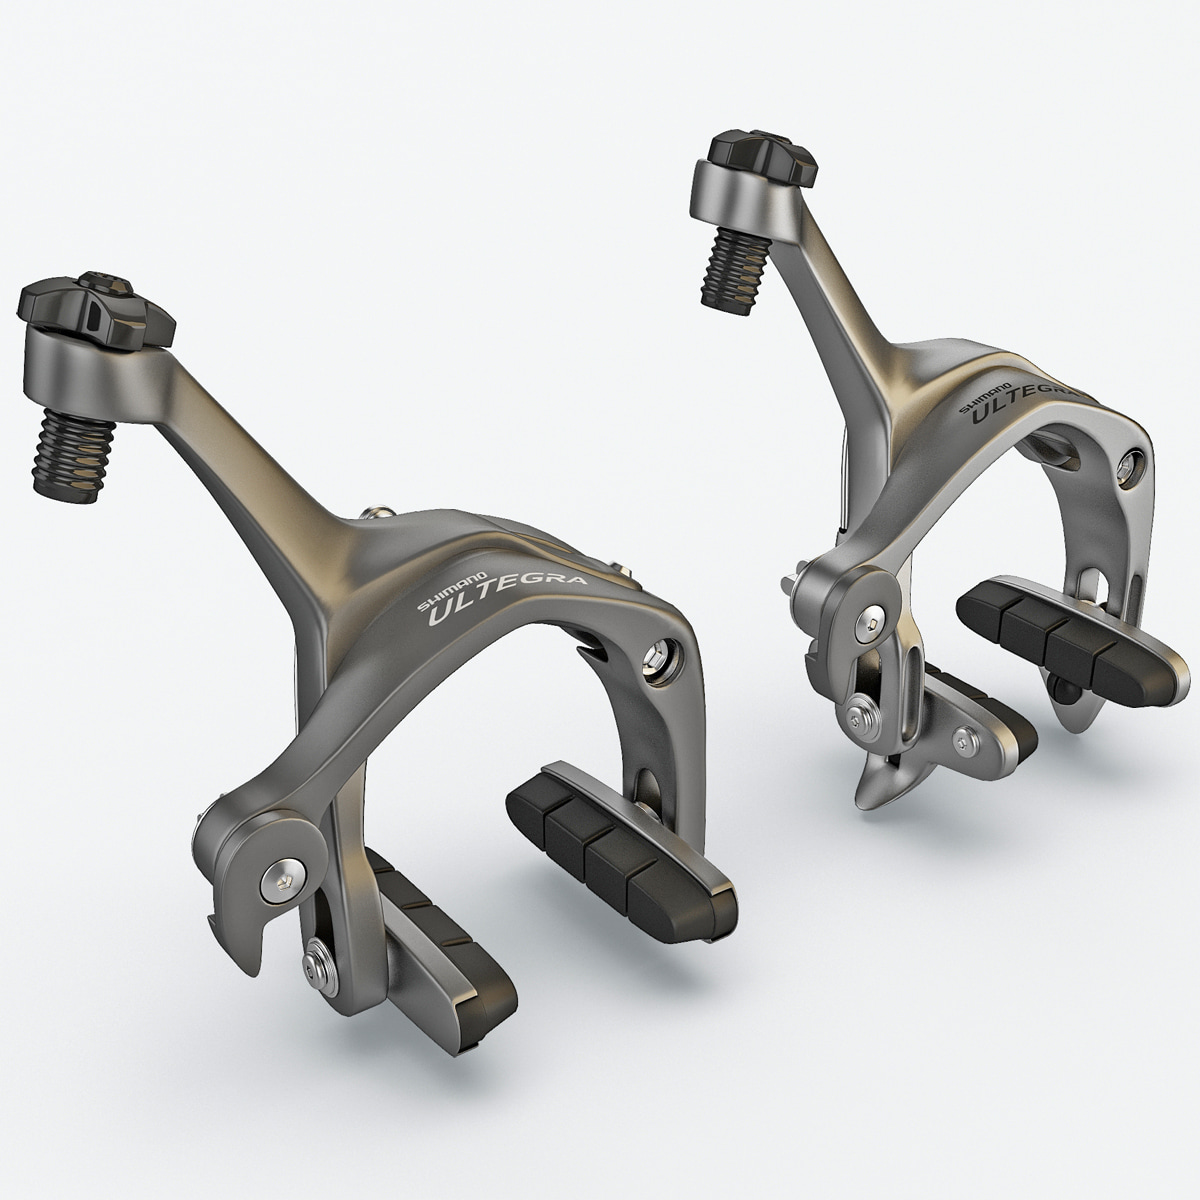 Bike Brake Shimano Ultegra_2.jpg